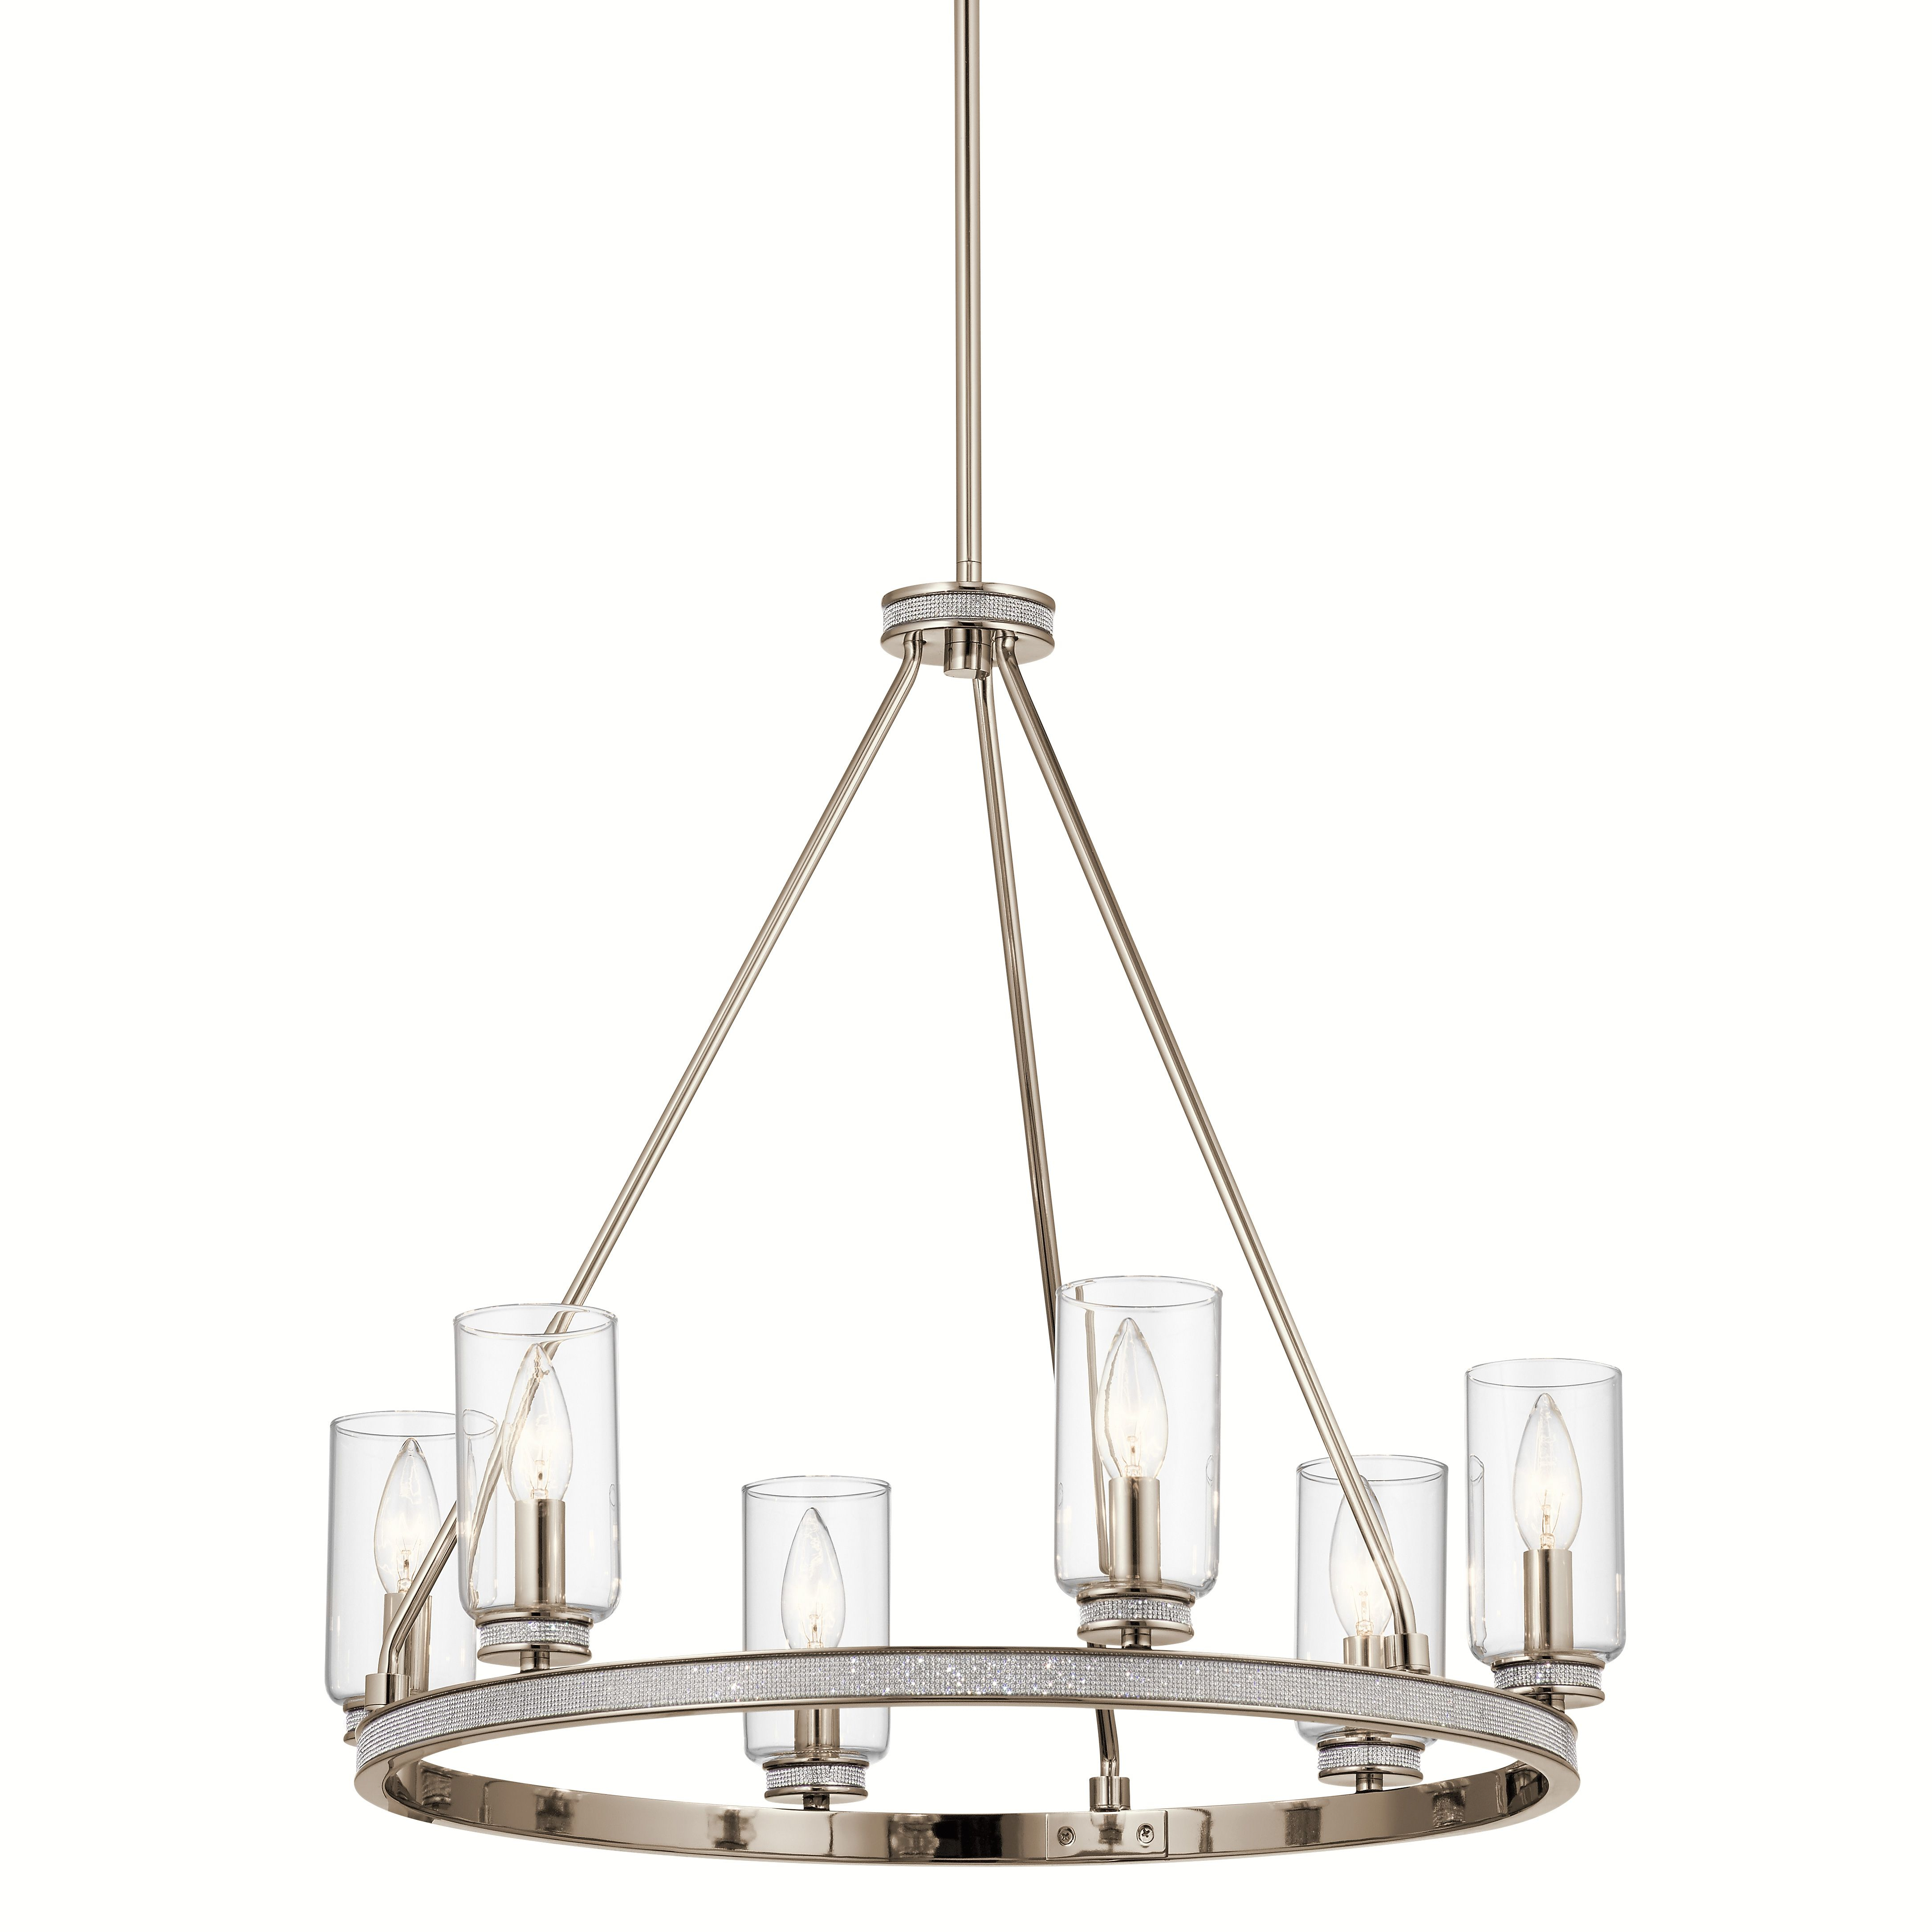 Kichler Angelica 6 Light Polished Nickel With Glass Accents In Angelina 1 Light Single Cylinder Pendants (Photo 29 of 30)